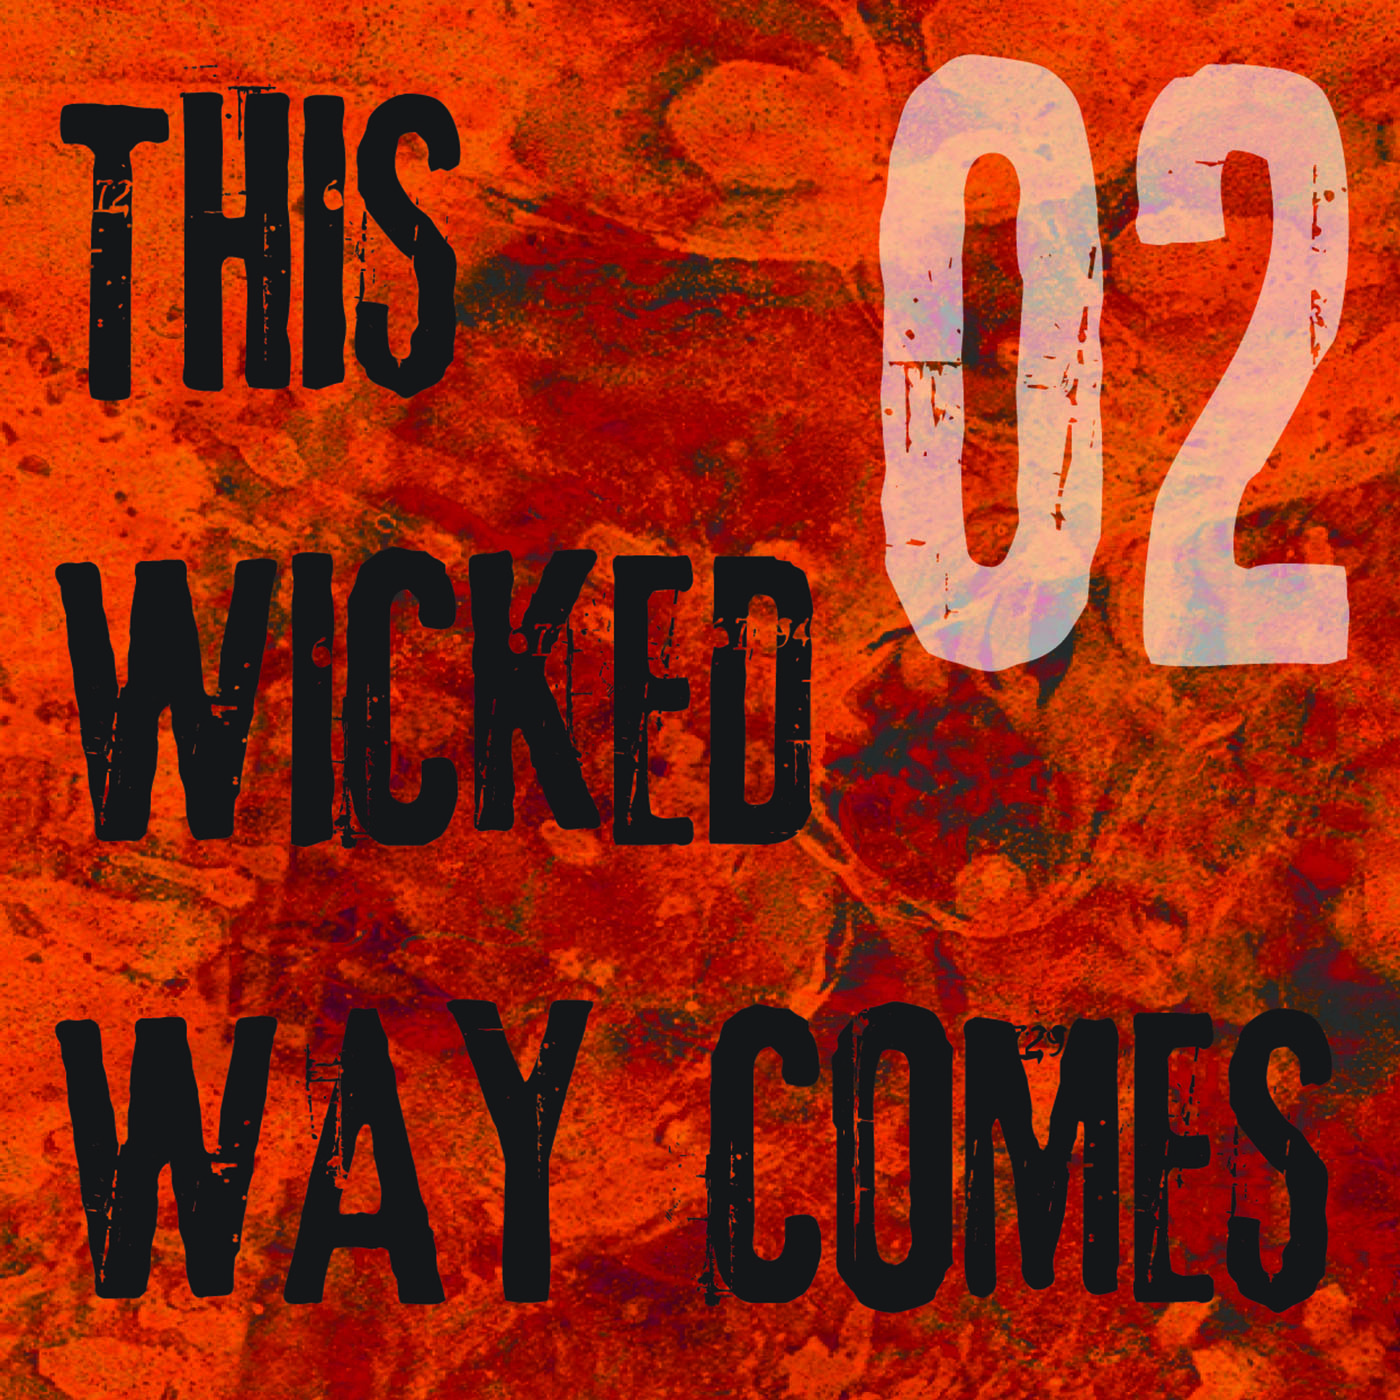 This Wicked Way Comes – Episode 2: We Only Come Out At Night